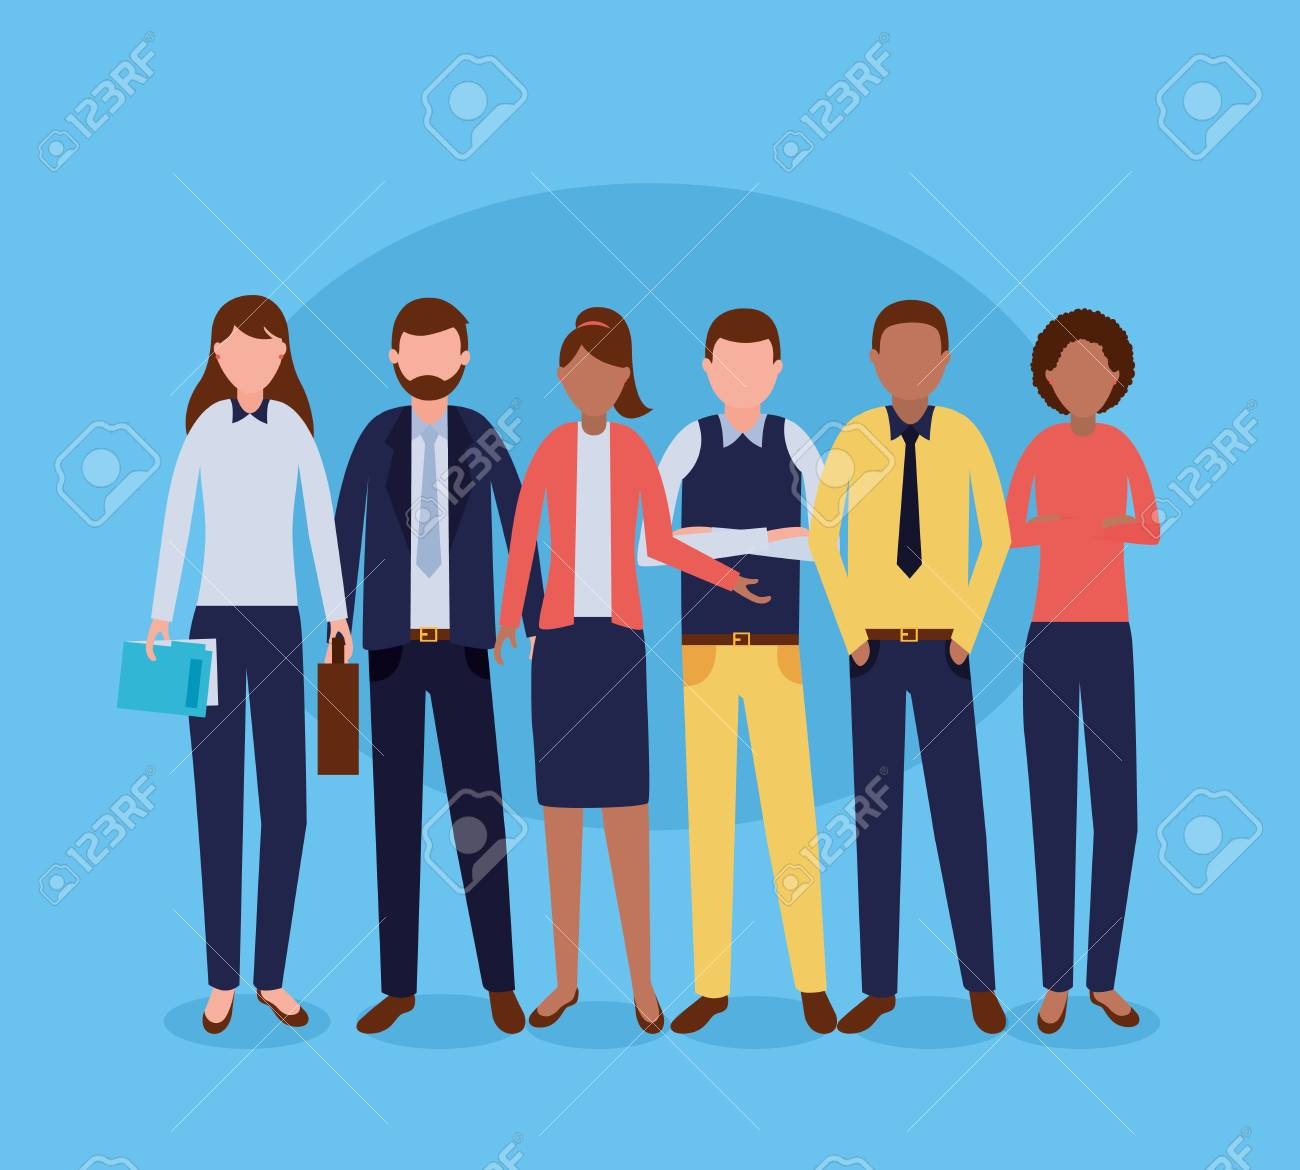 group costume work business people vector illustration - 116254551